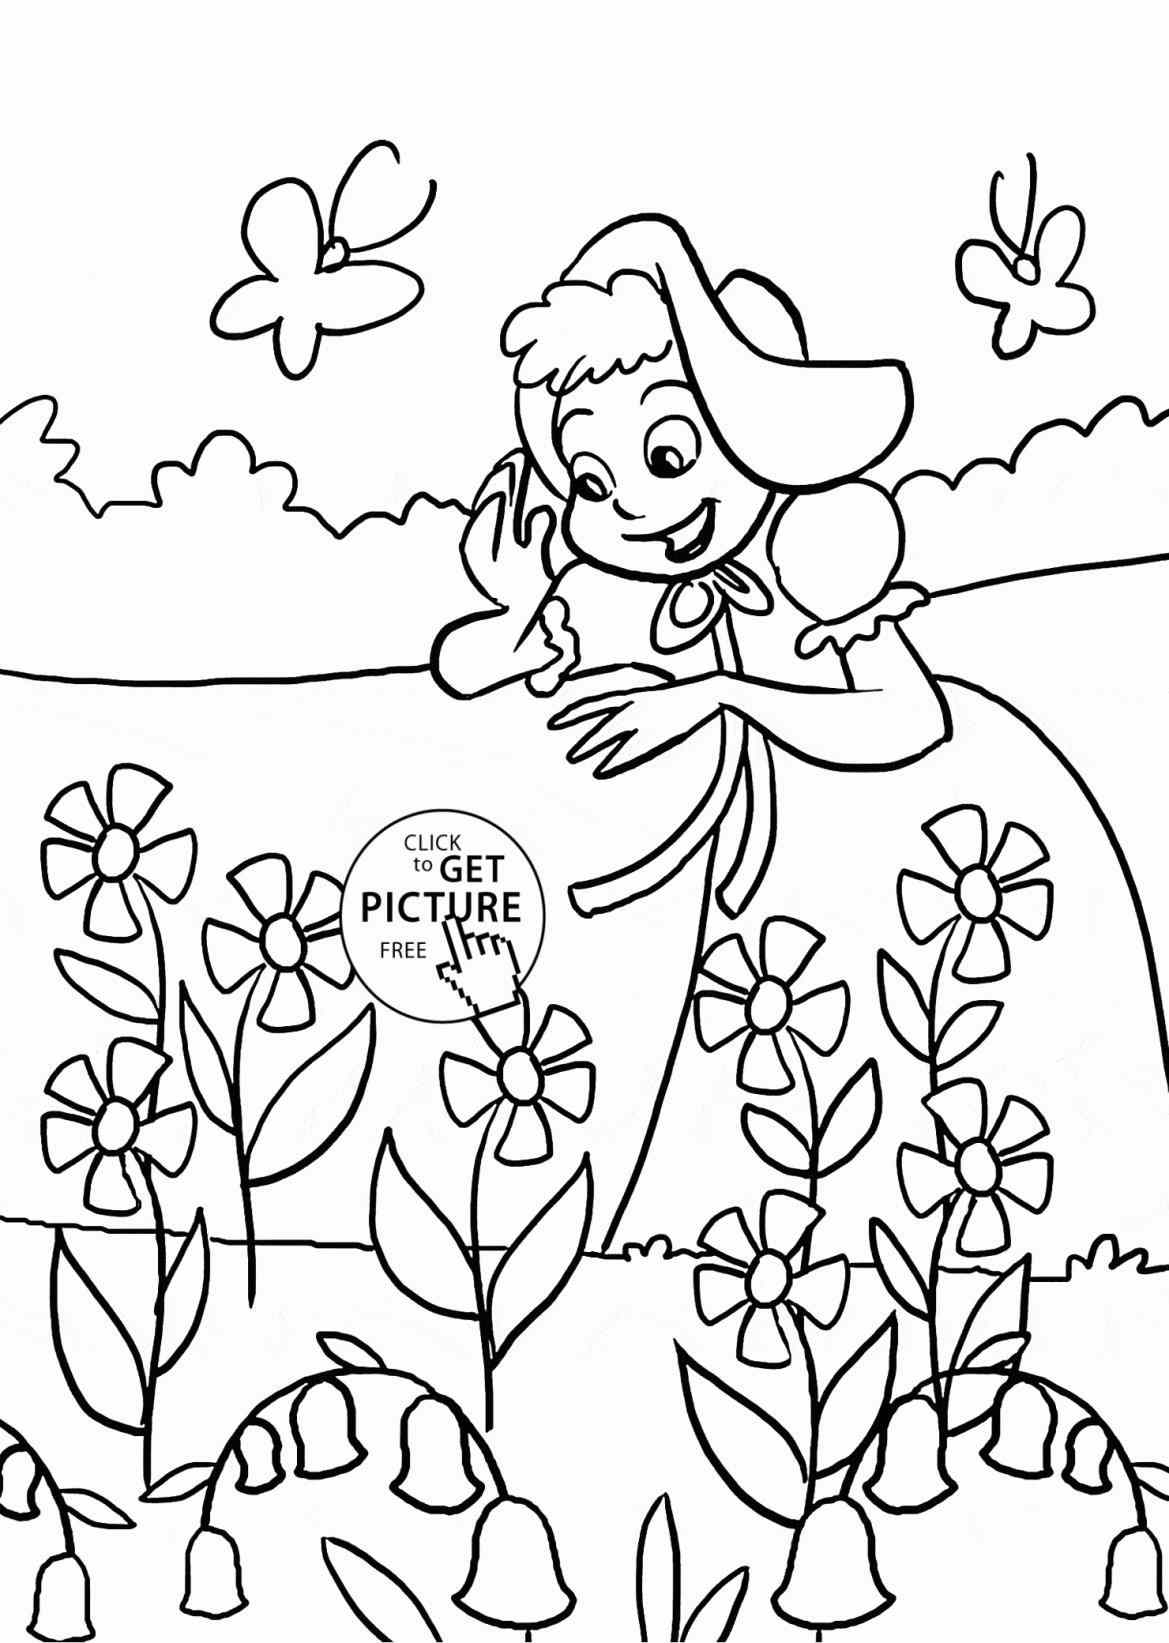 1169x1643 By Spring Season Drawing Edencascade On Kids And Rain